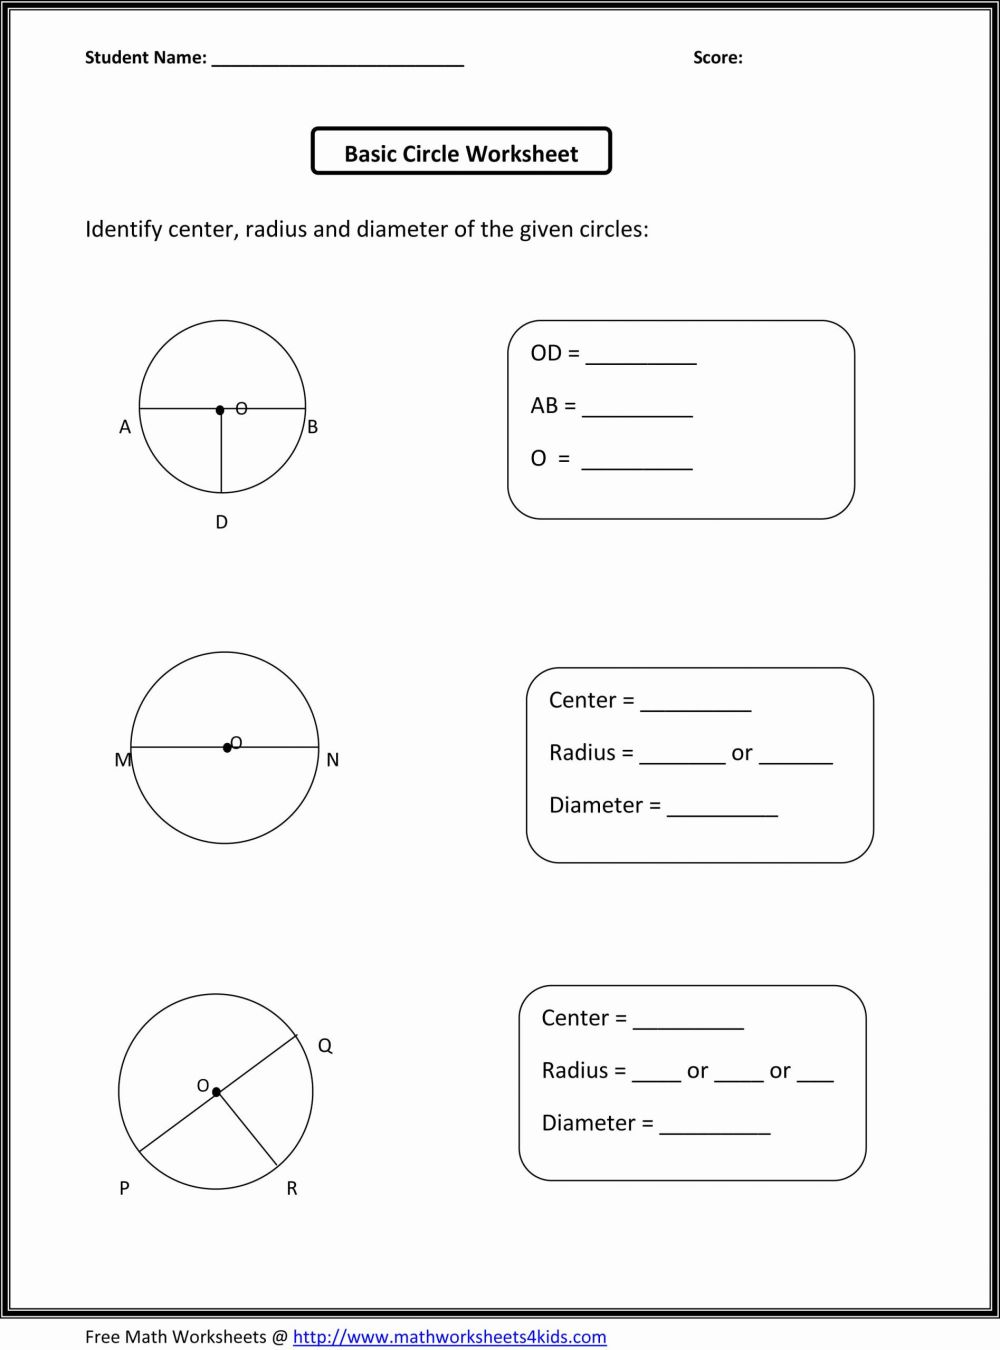 medium resolution of 5 Free Math Worksheets Third Grade 3 Measurement Metric Units Mass Kg Gm -  apocalomegaproductions.com